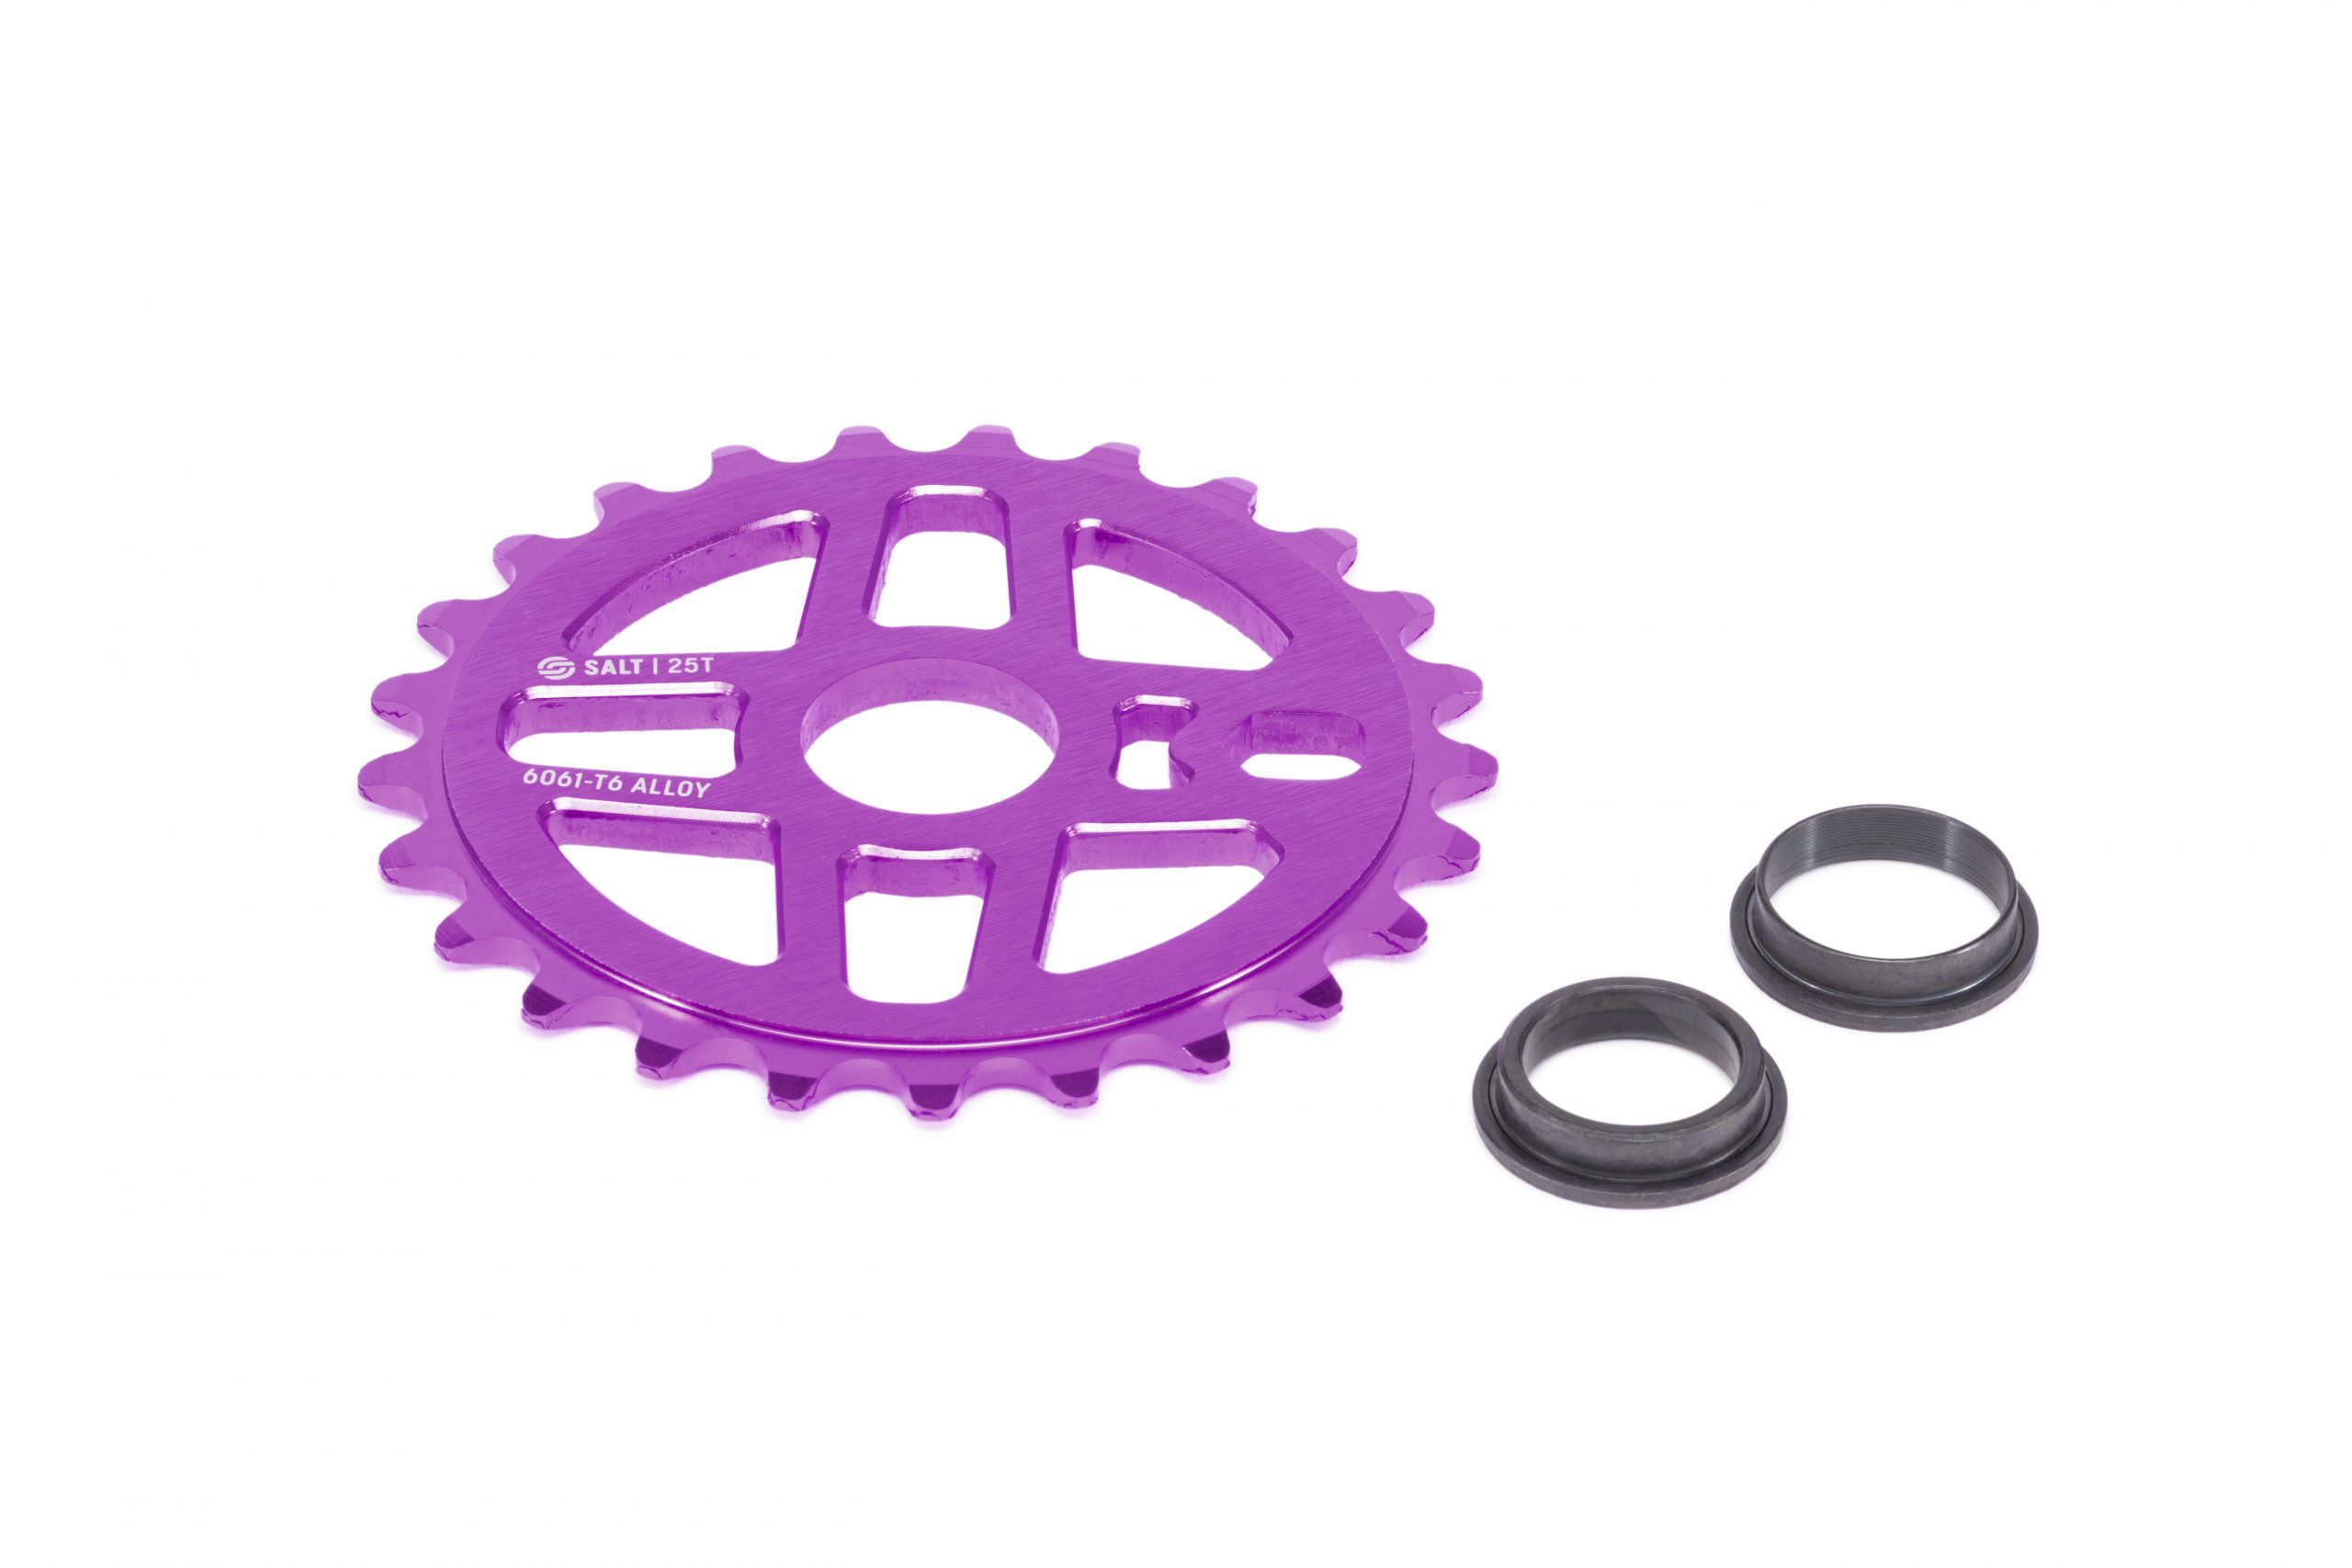 Salt_Pro_sprocket_25t_purple-02